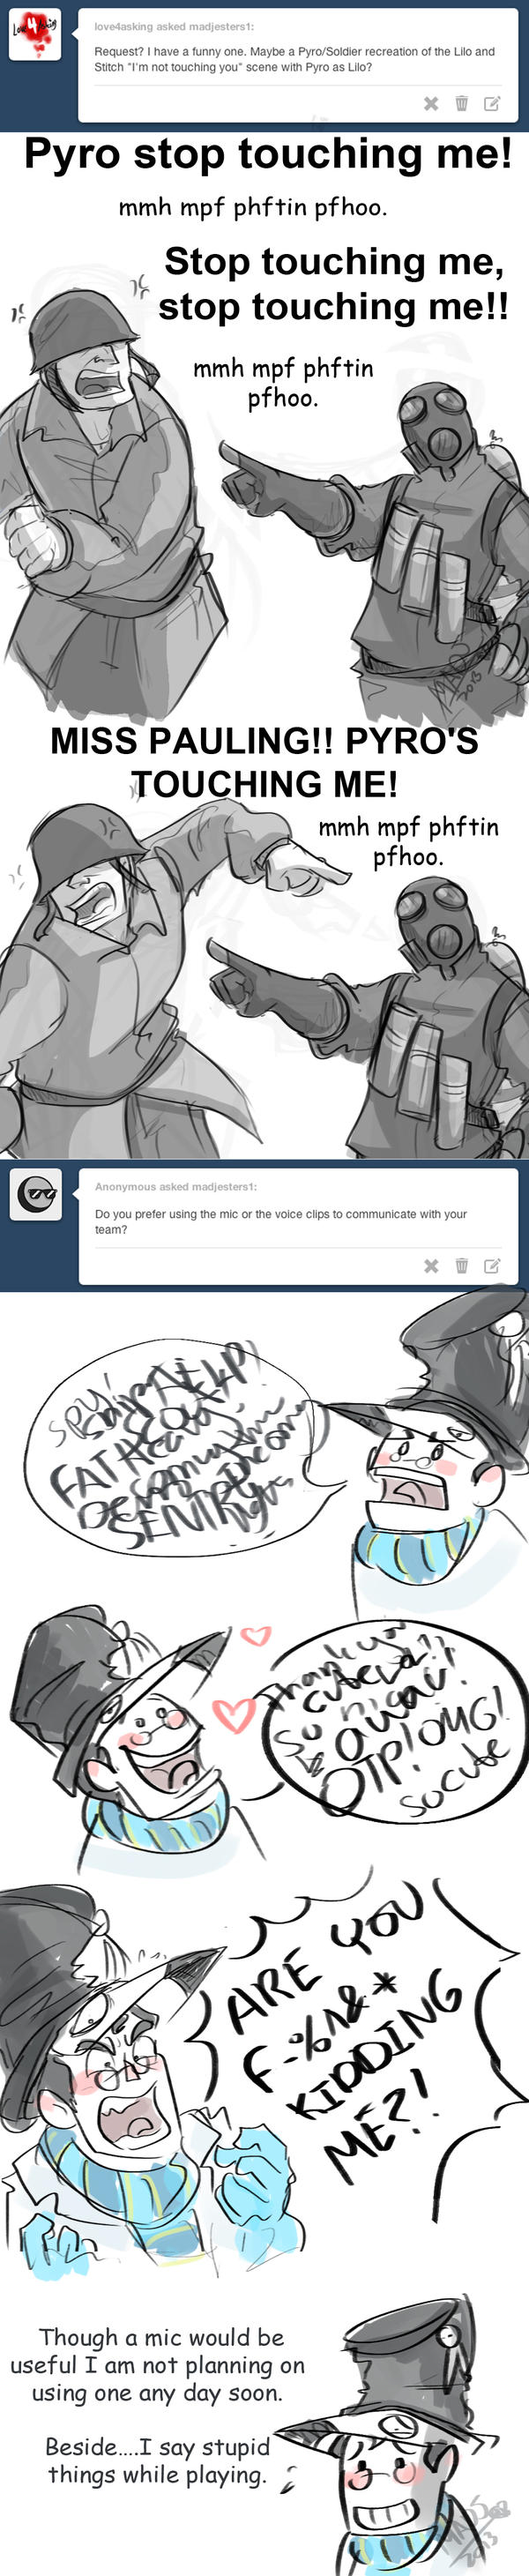 TF2-TumblrAsk-5 by MadJesters1